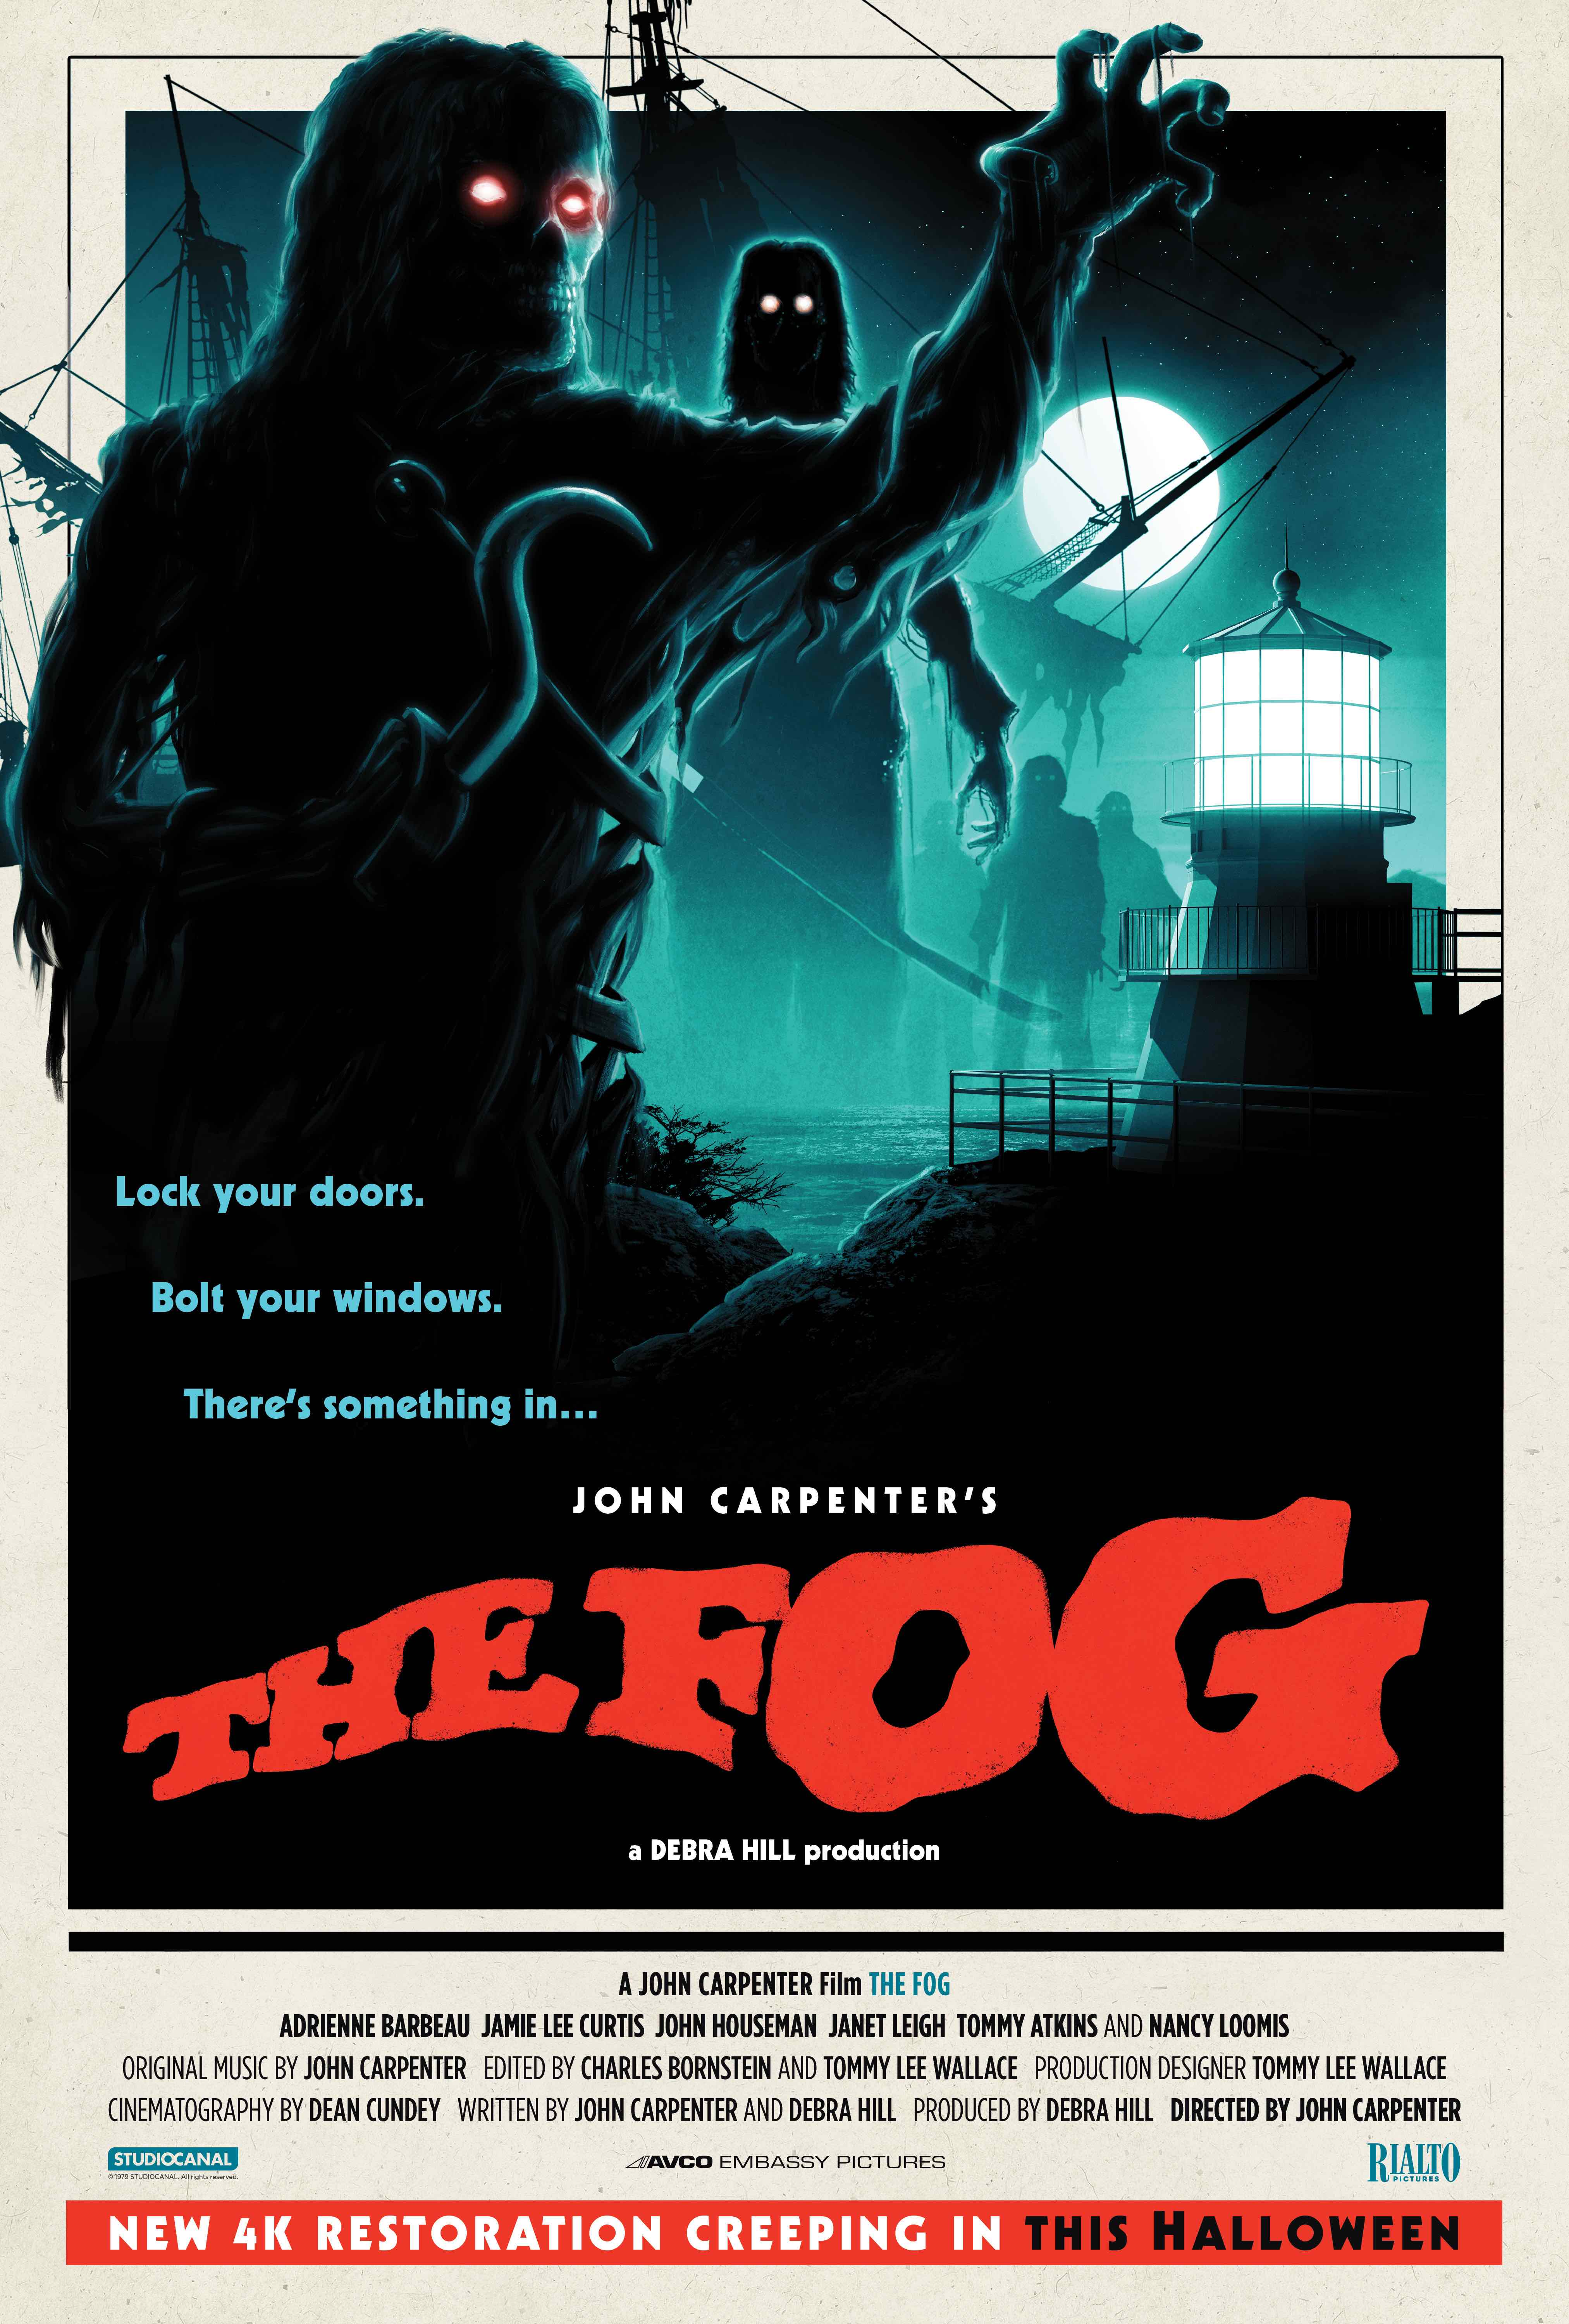 John Carpenter's The Fog is Back in 4K